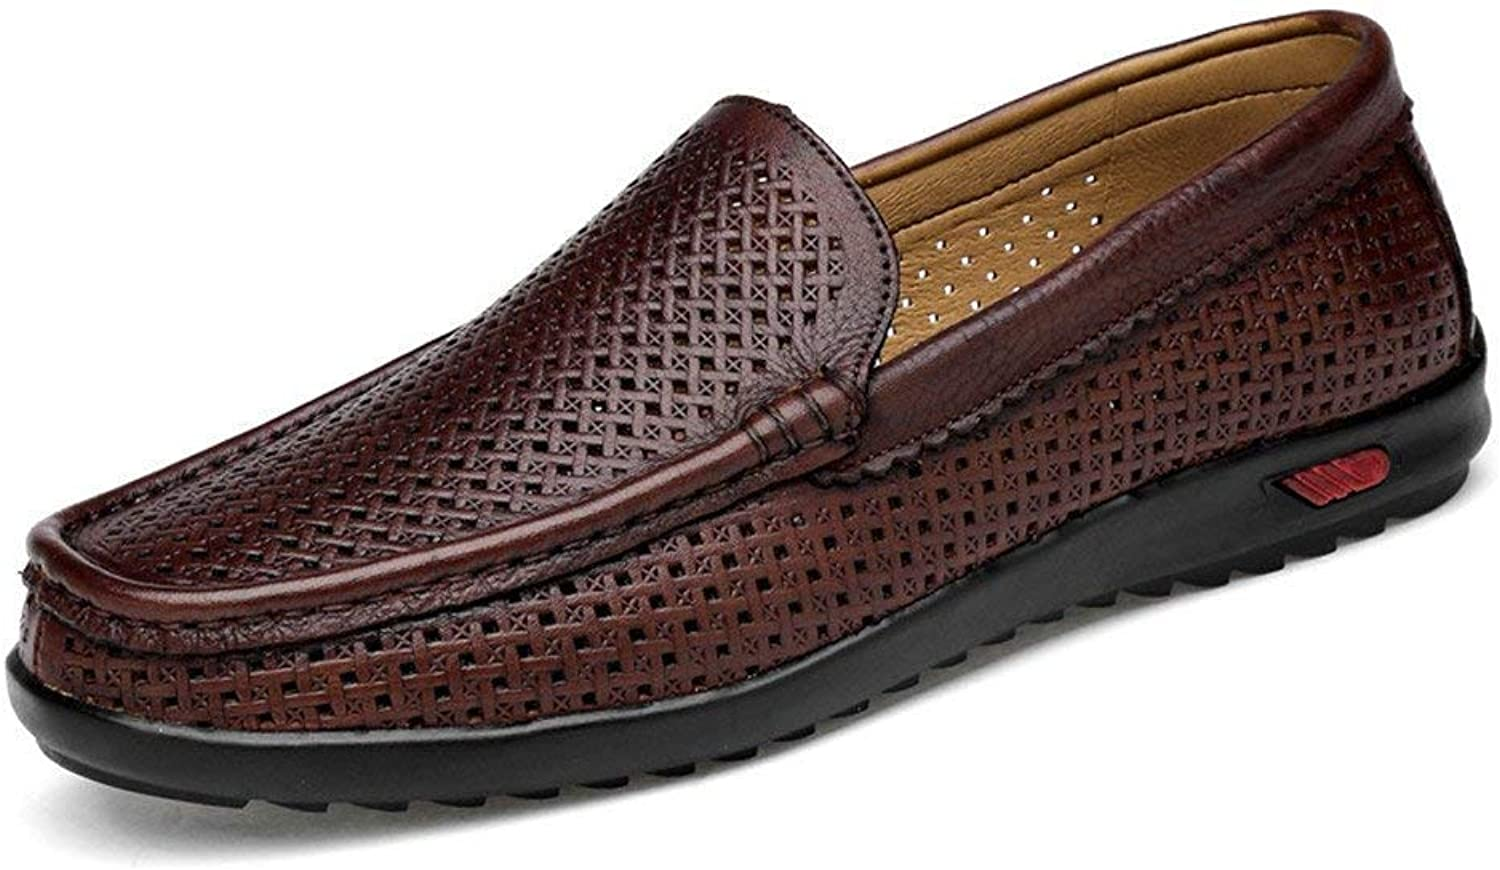 FuweiEncore Men's Moccasins shoes, Classic Men's Driving Penny Loafers Casual Slip-On Boot Moccasins Rubber Sole (color  Crocodile Brown, Size  43 EU) (color   Hollow Brown, Size   47 EU)